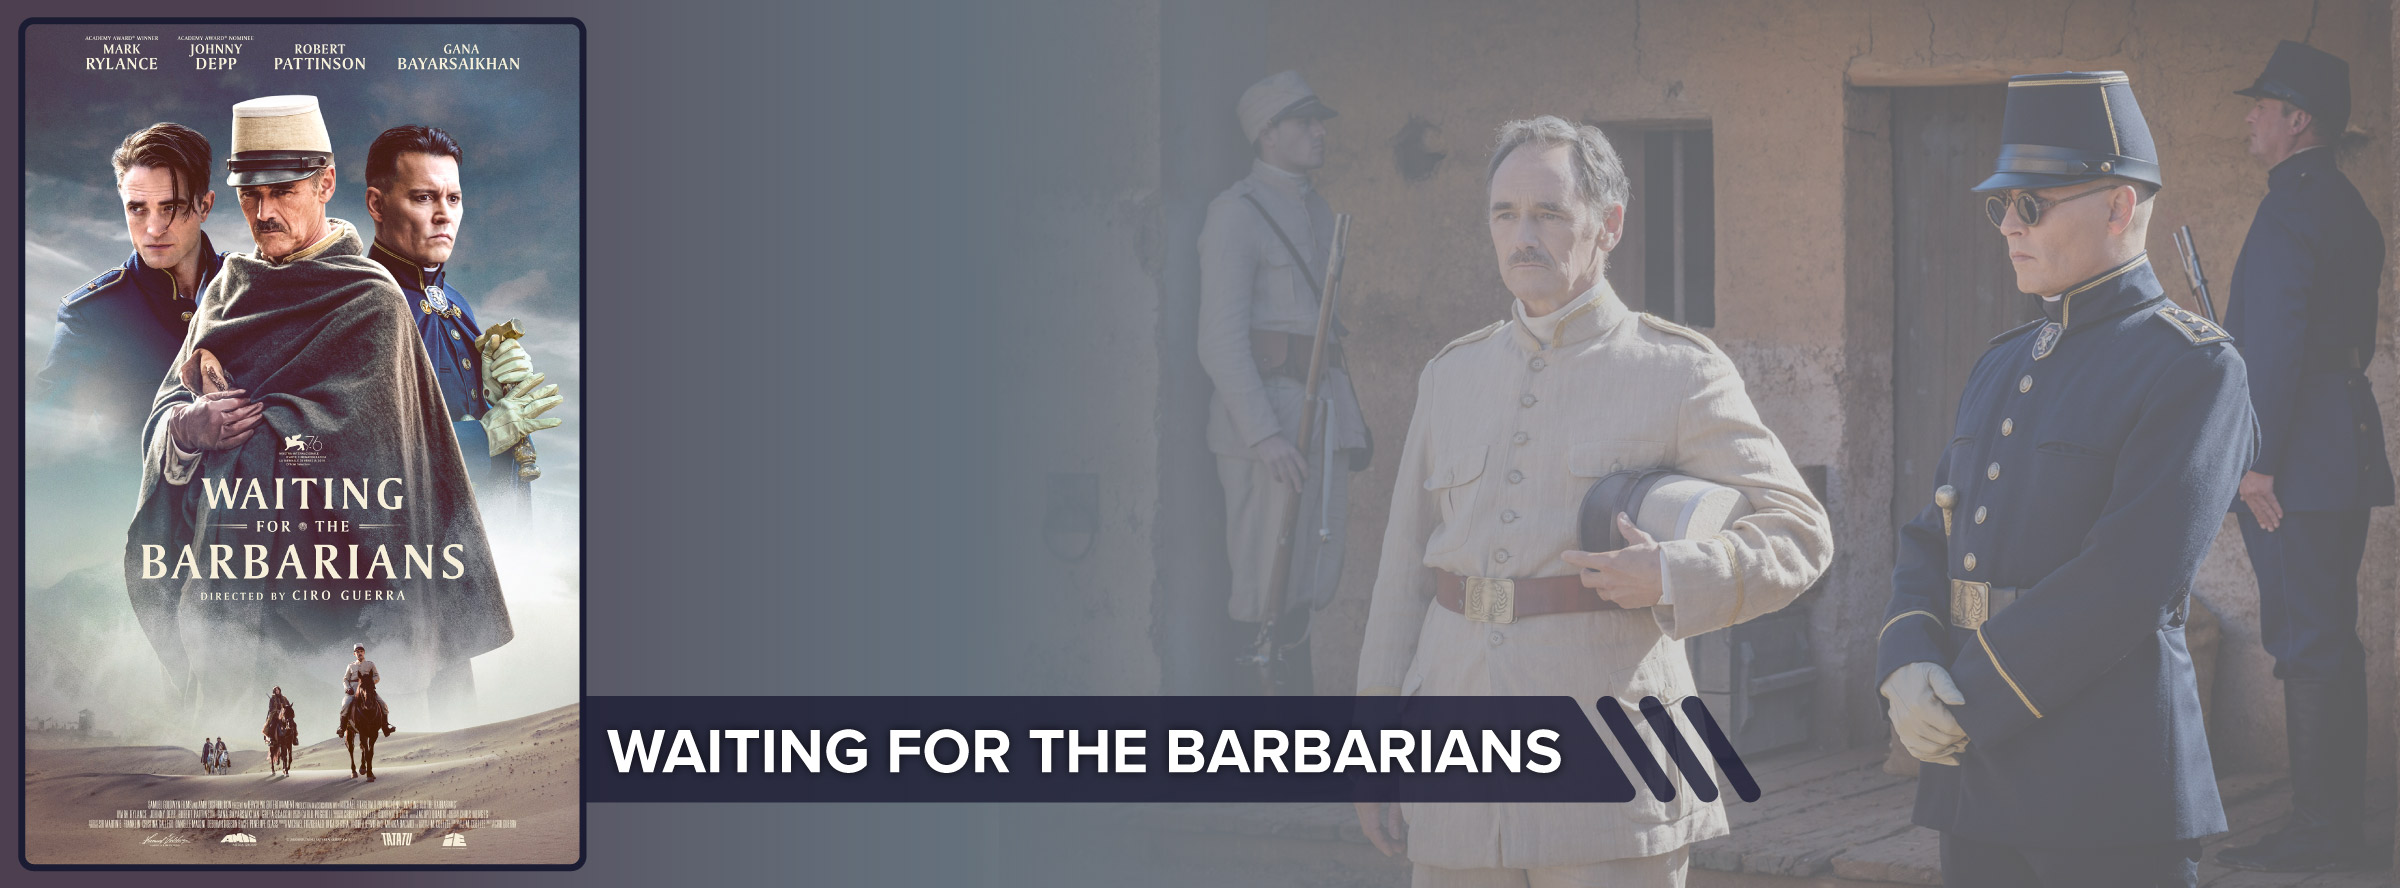 Slider Image for Waiting for the Barbarians